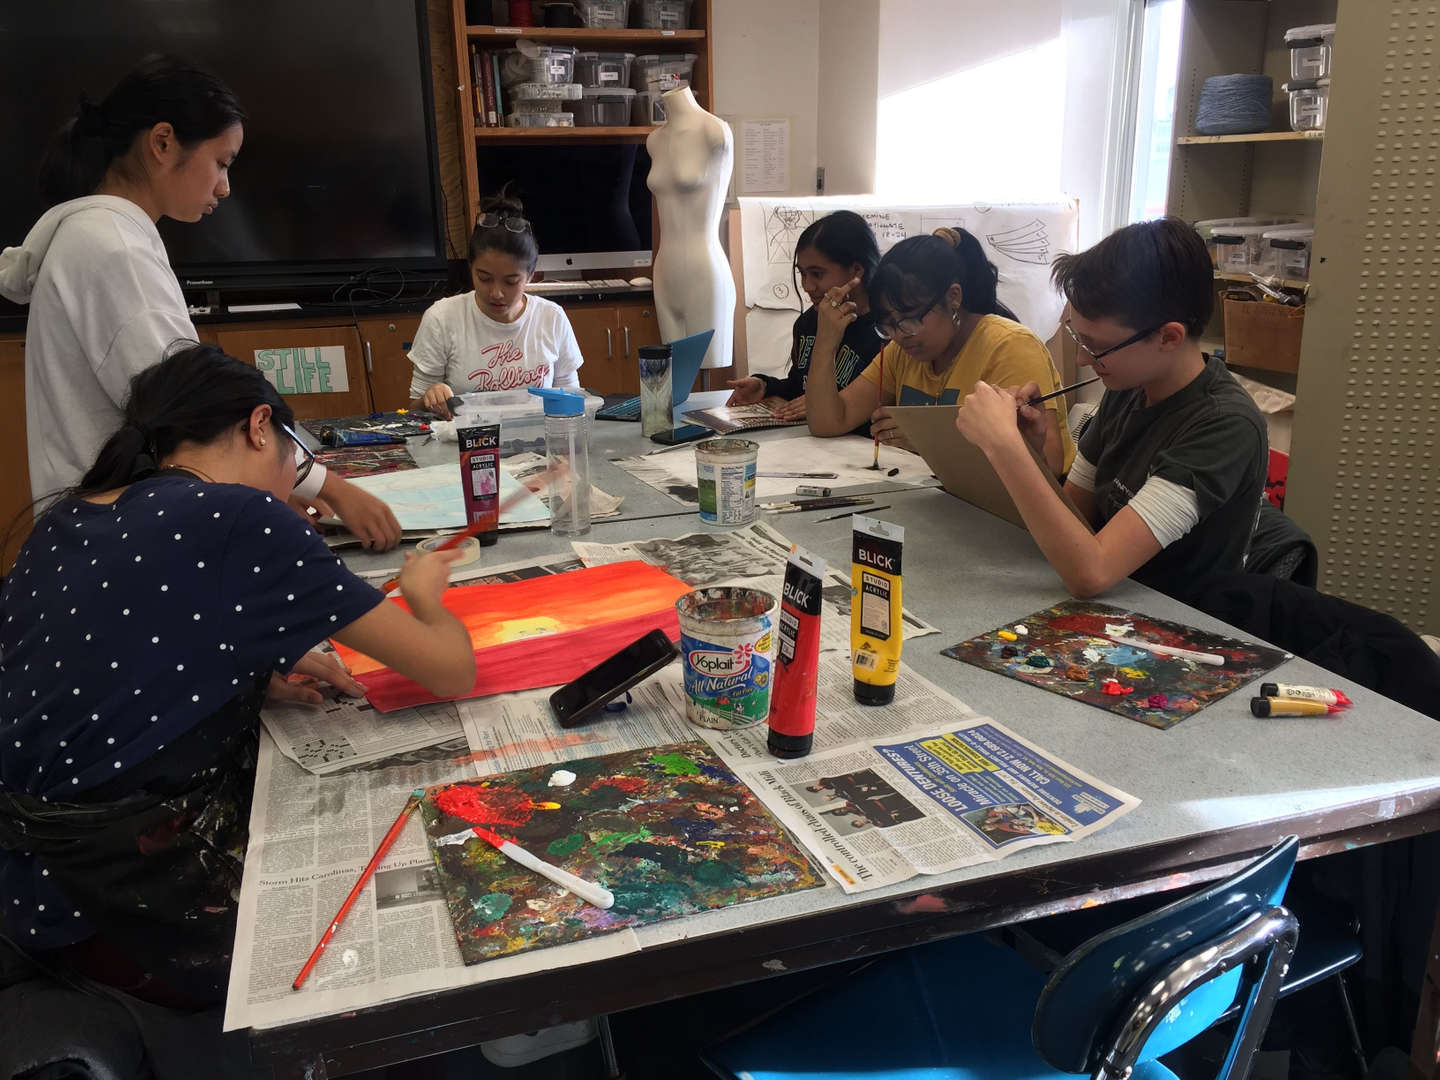 Students working on art projects